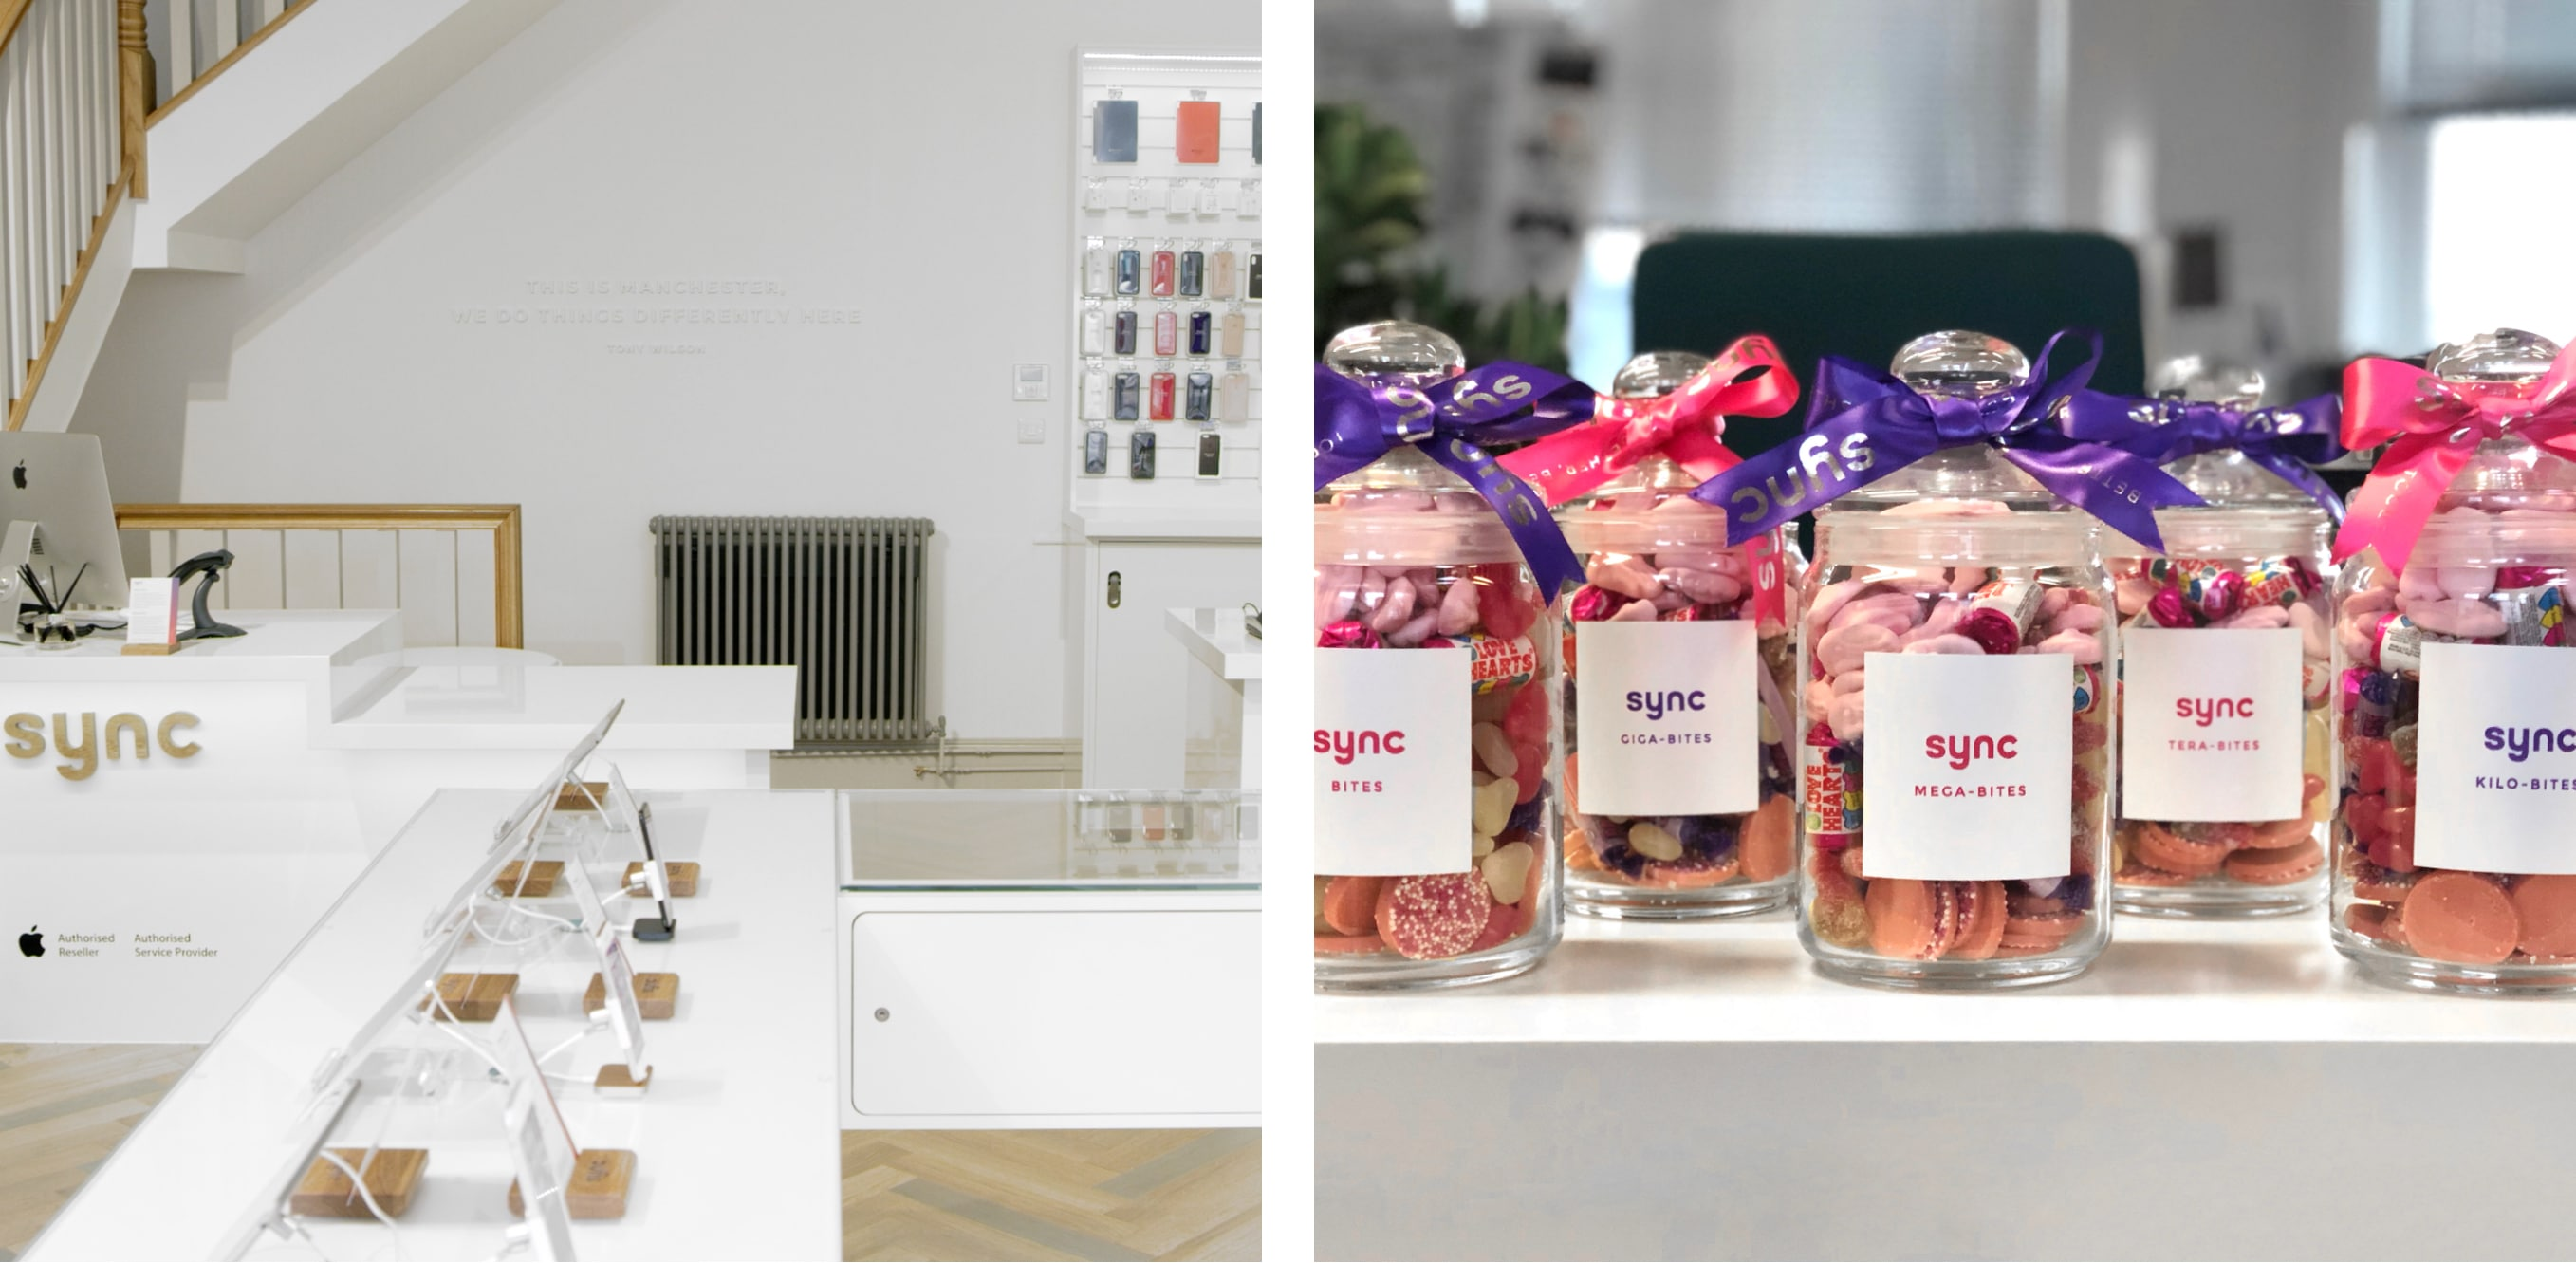 sync store and sweets